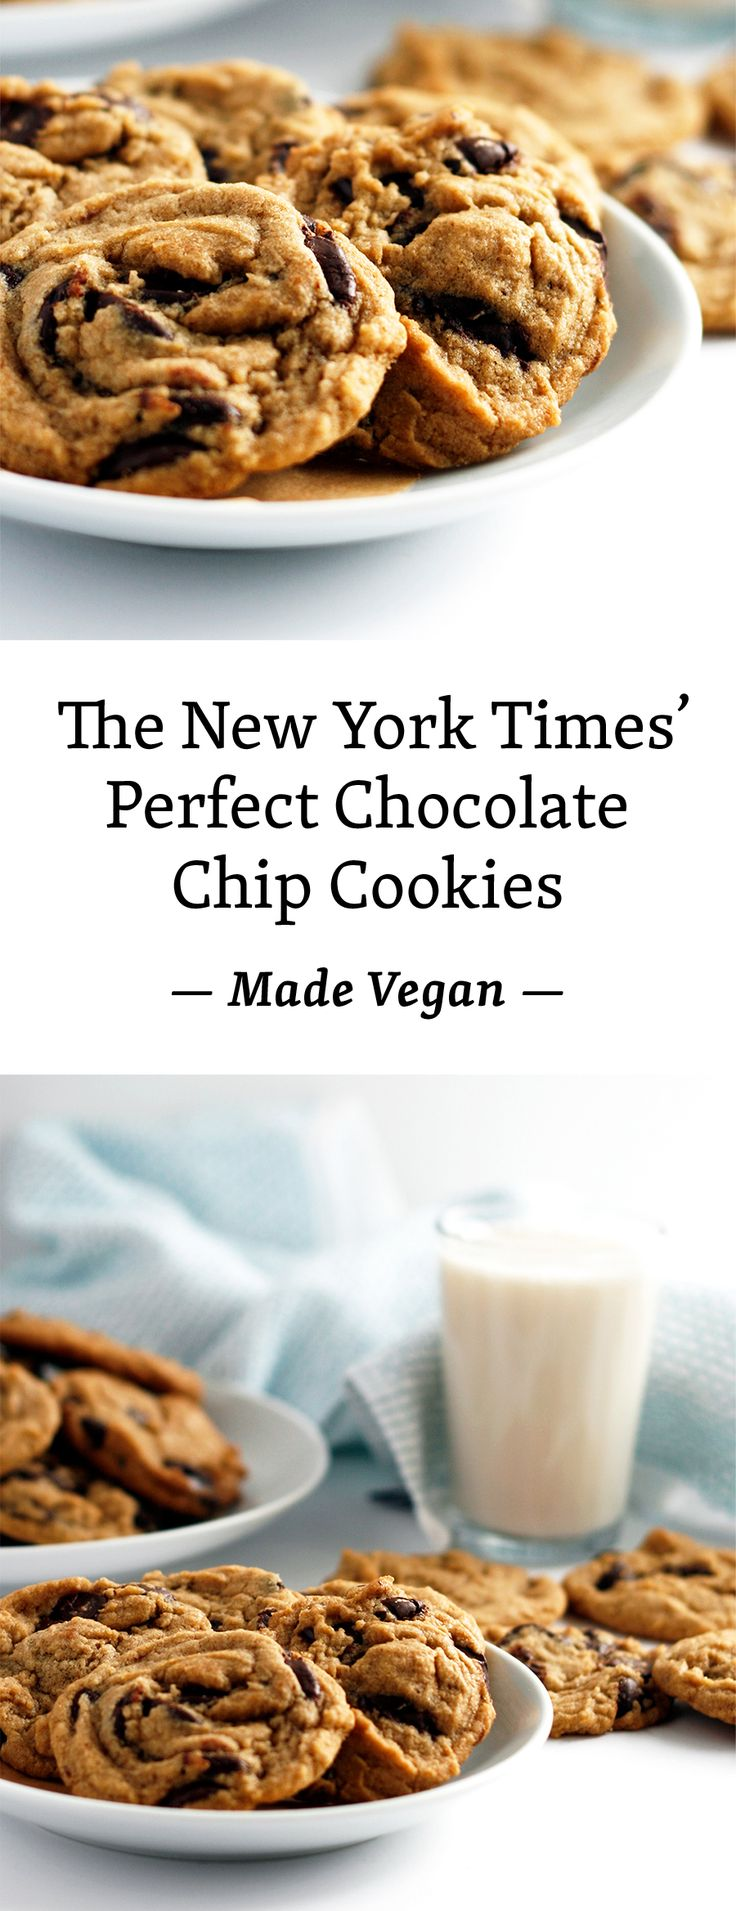 A vegan adaptation of theNew York Times' perfect chocolate chip cookie. Made with bittersweet chocolate and flake sea salt, it's the essential cookie.